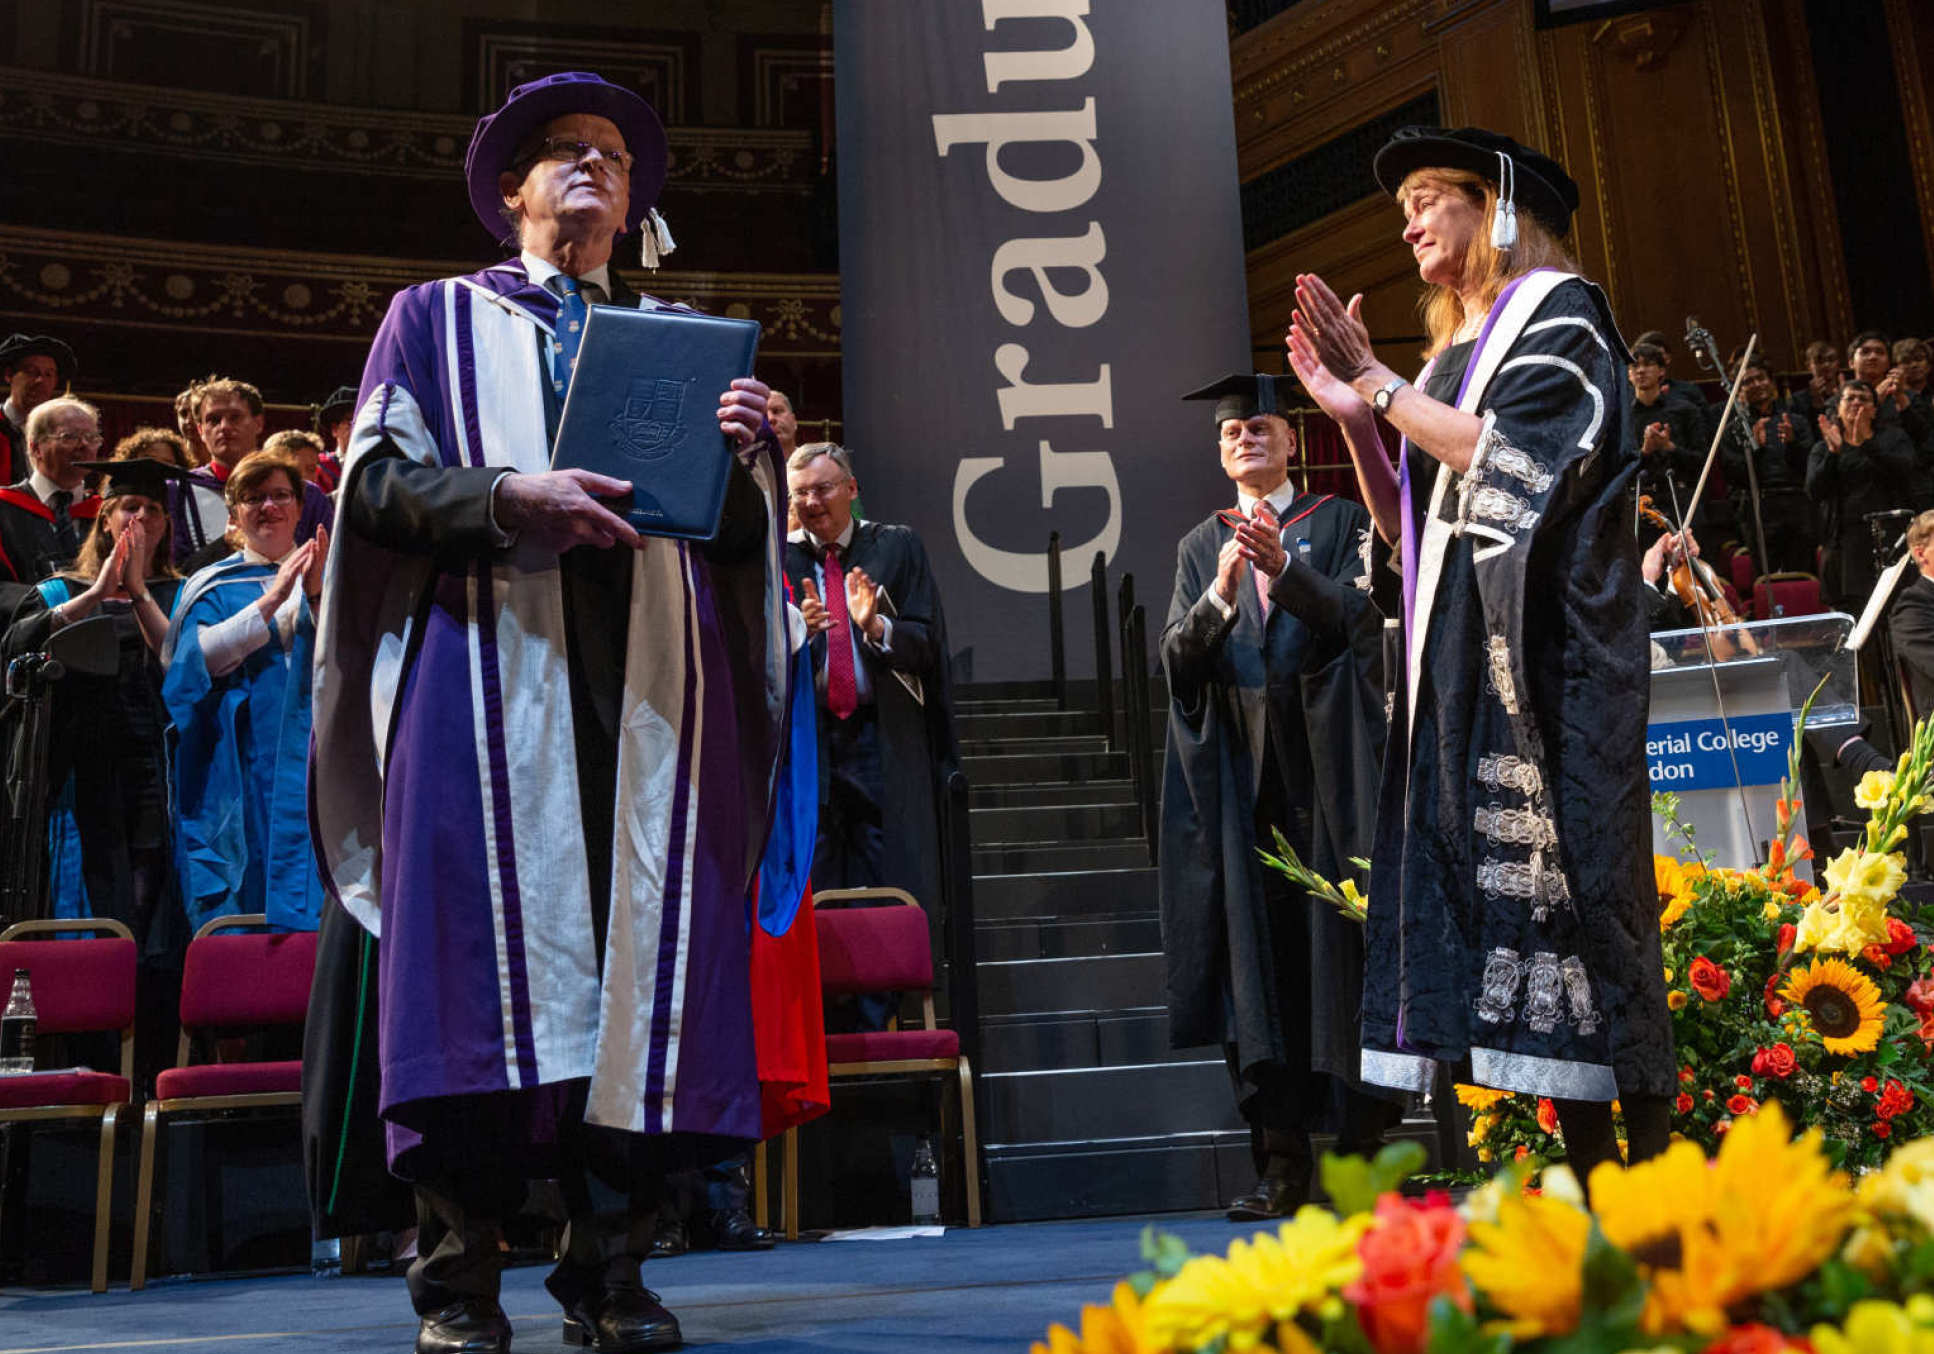 Professor Stirlings receives an honorary doctorate of science during Commemoration Day on Wednesday 17 October